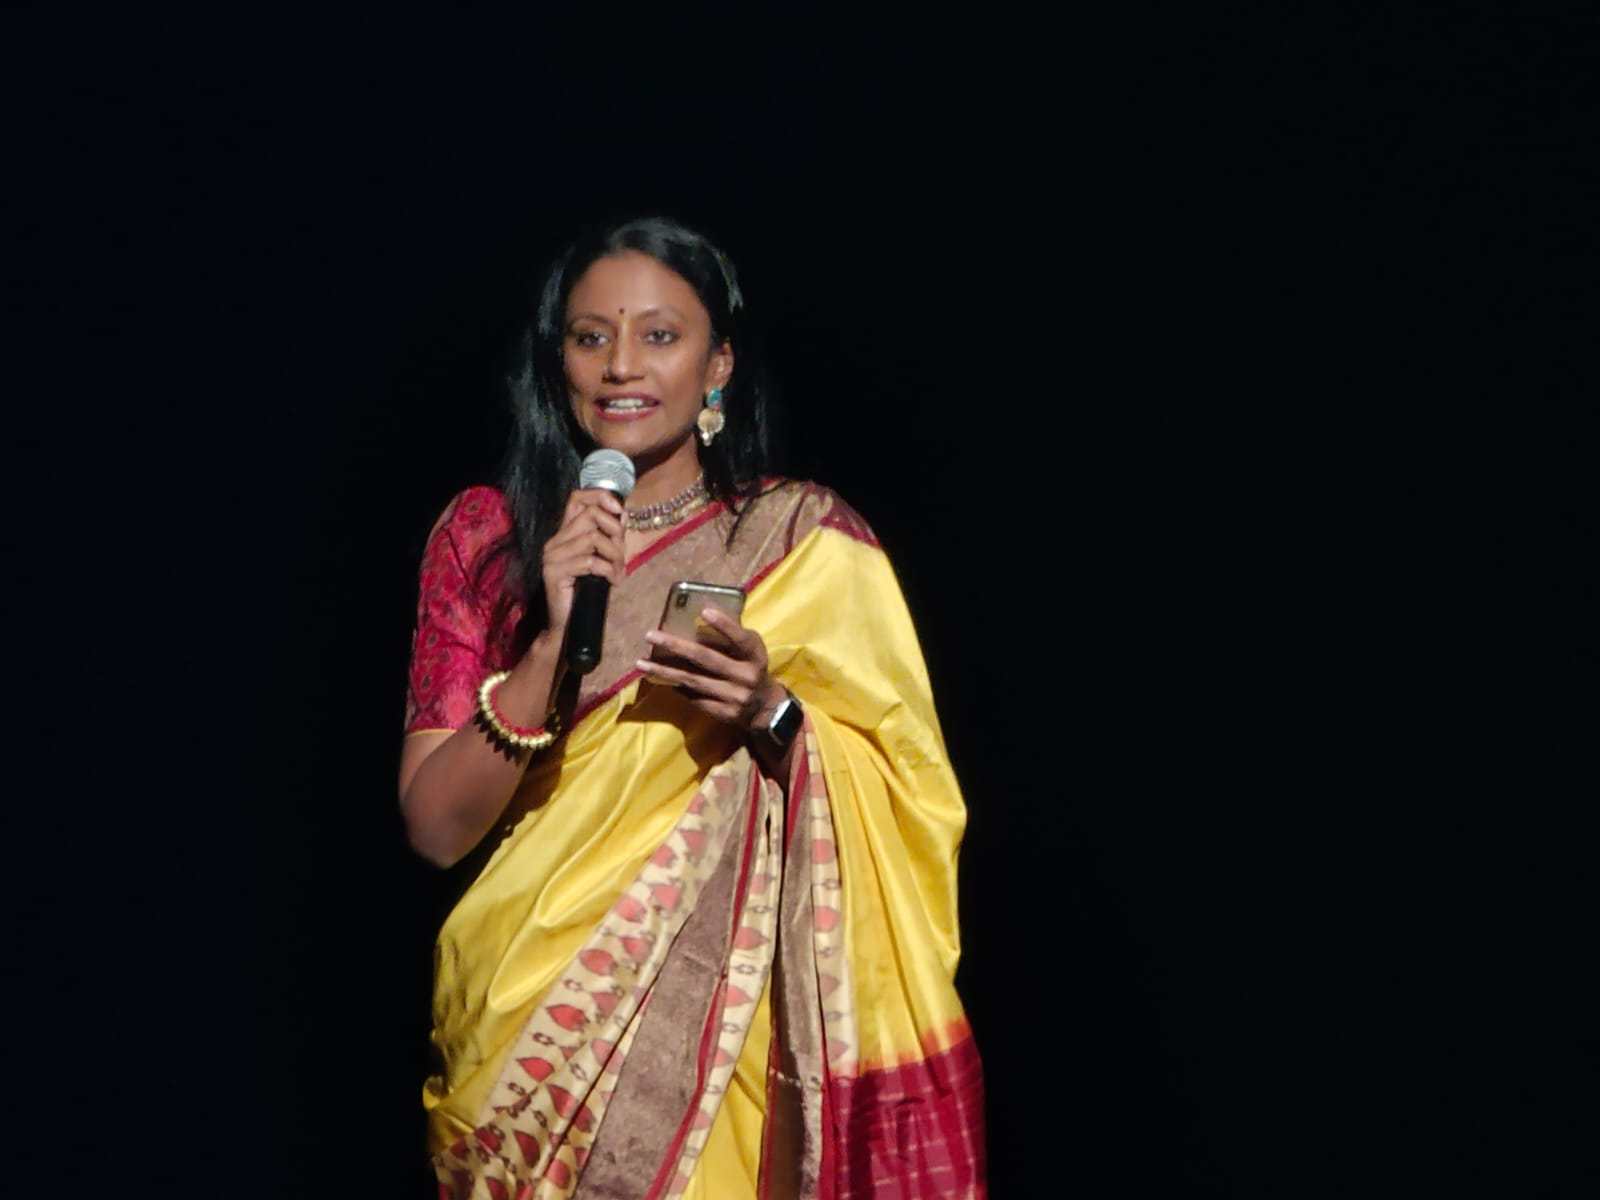 Meera said she was elated to receive an award named after Neila maami, a pioneer in promoting Indian arts and culture in Singapore. Photo: Connected to India